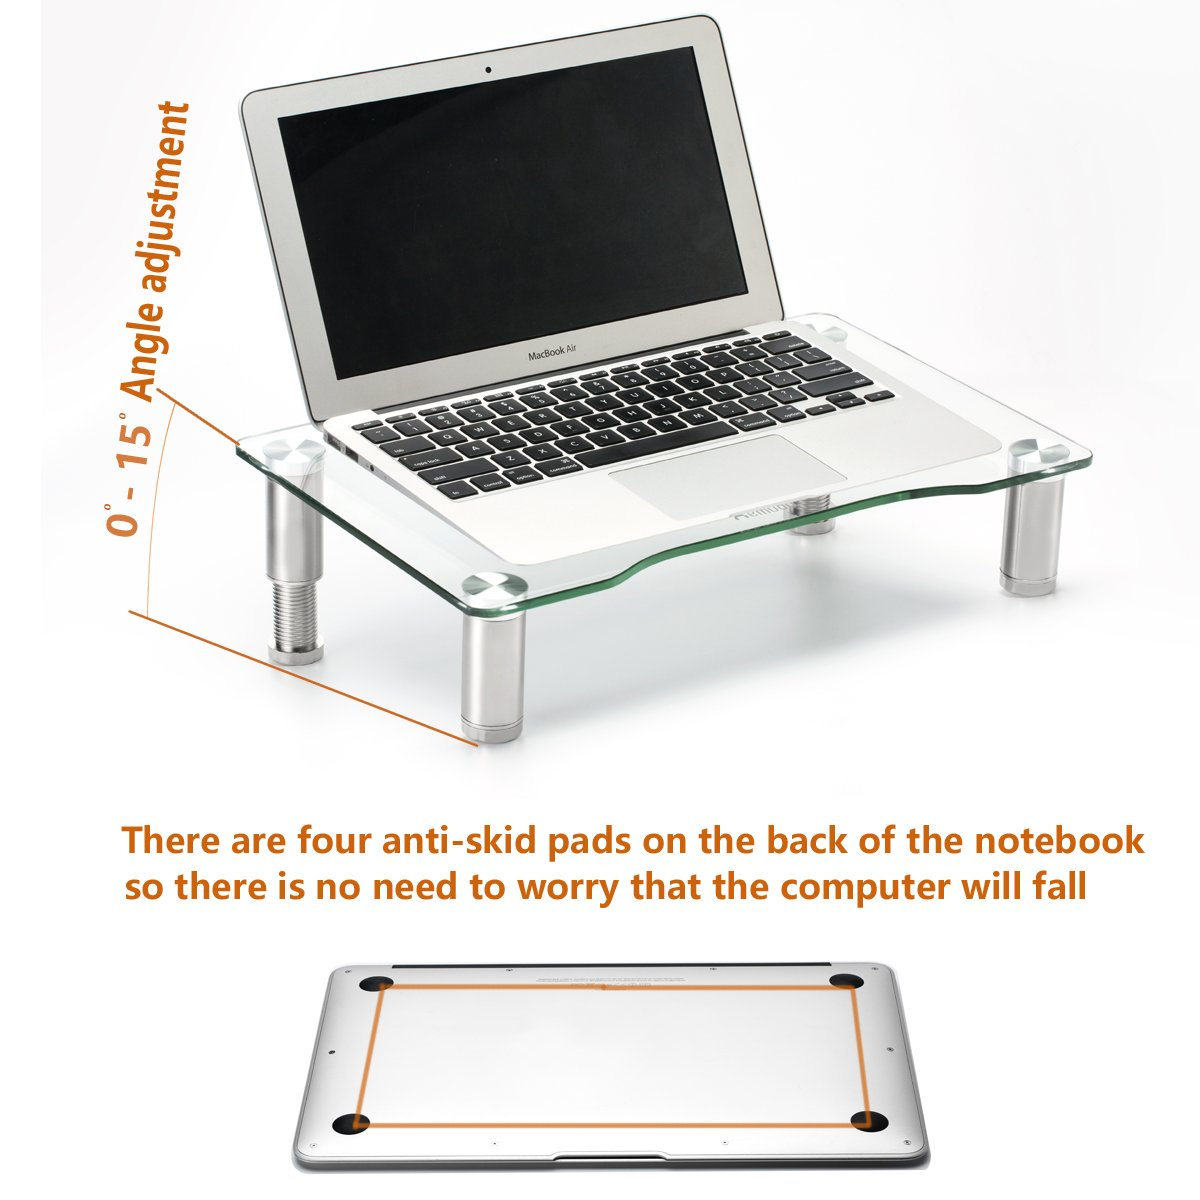 Clear Tempered Glass Computer Monitor Riser With Height Adjustable Laptop Multi Media Desktop Stand For Flat Screen Lcd Led Tv Notebook Xbox Onehd01t 002